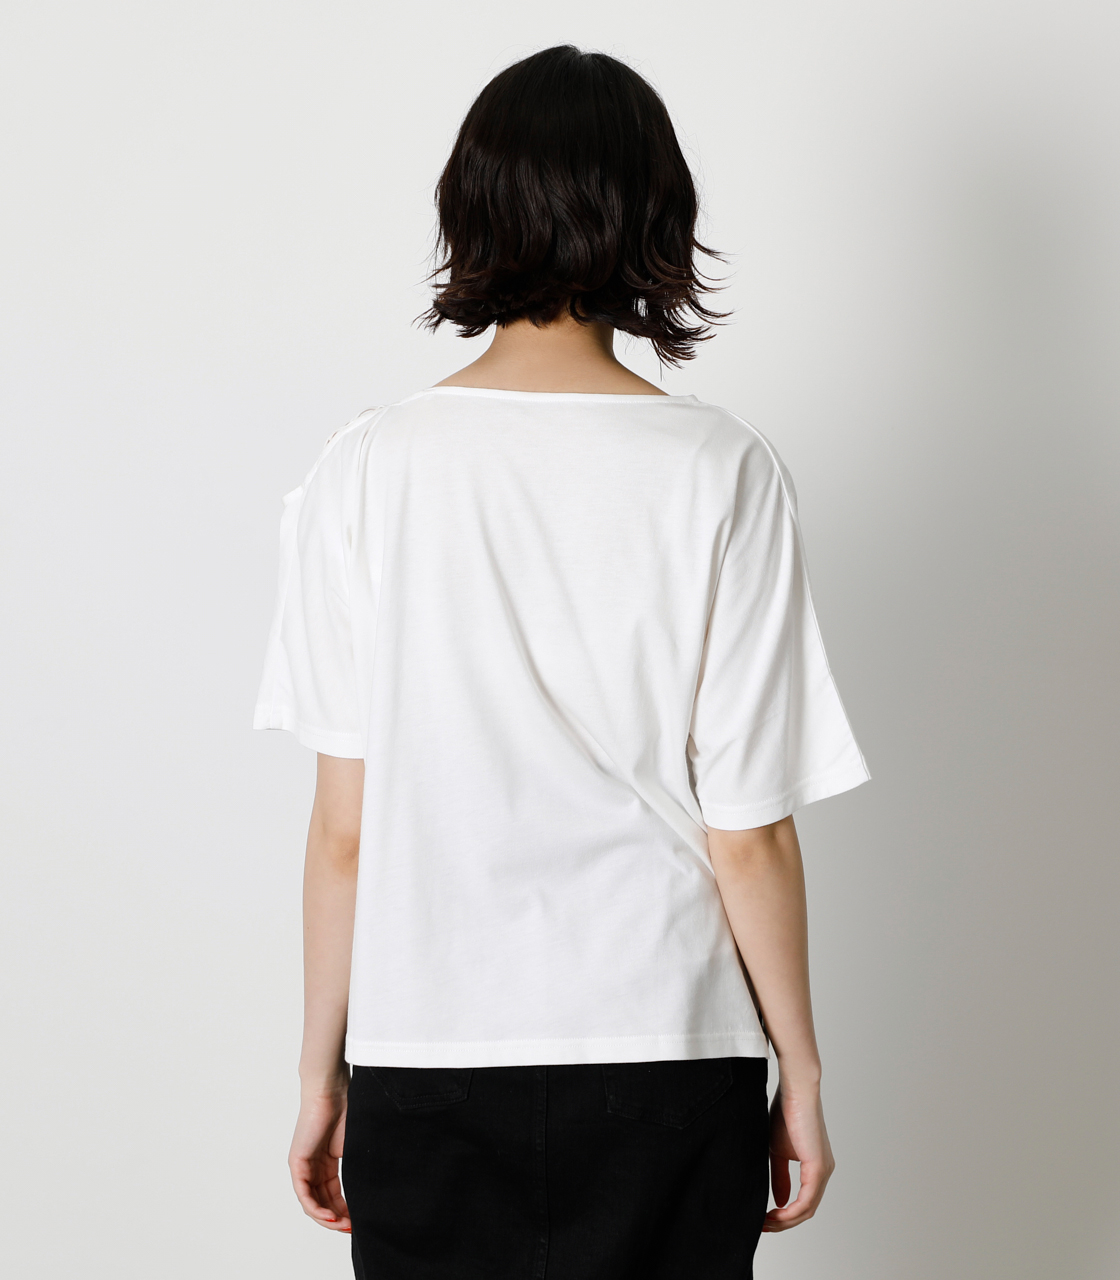 SHOULDER LACE UP TOPS/ショルダーレースアップトップス 詳細画像 O/WHT 6